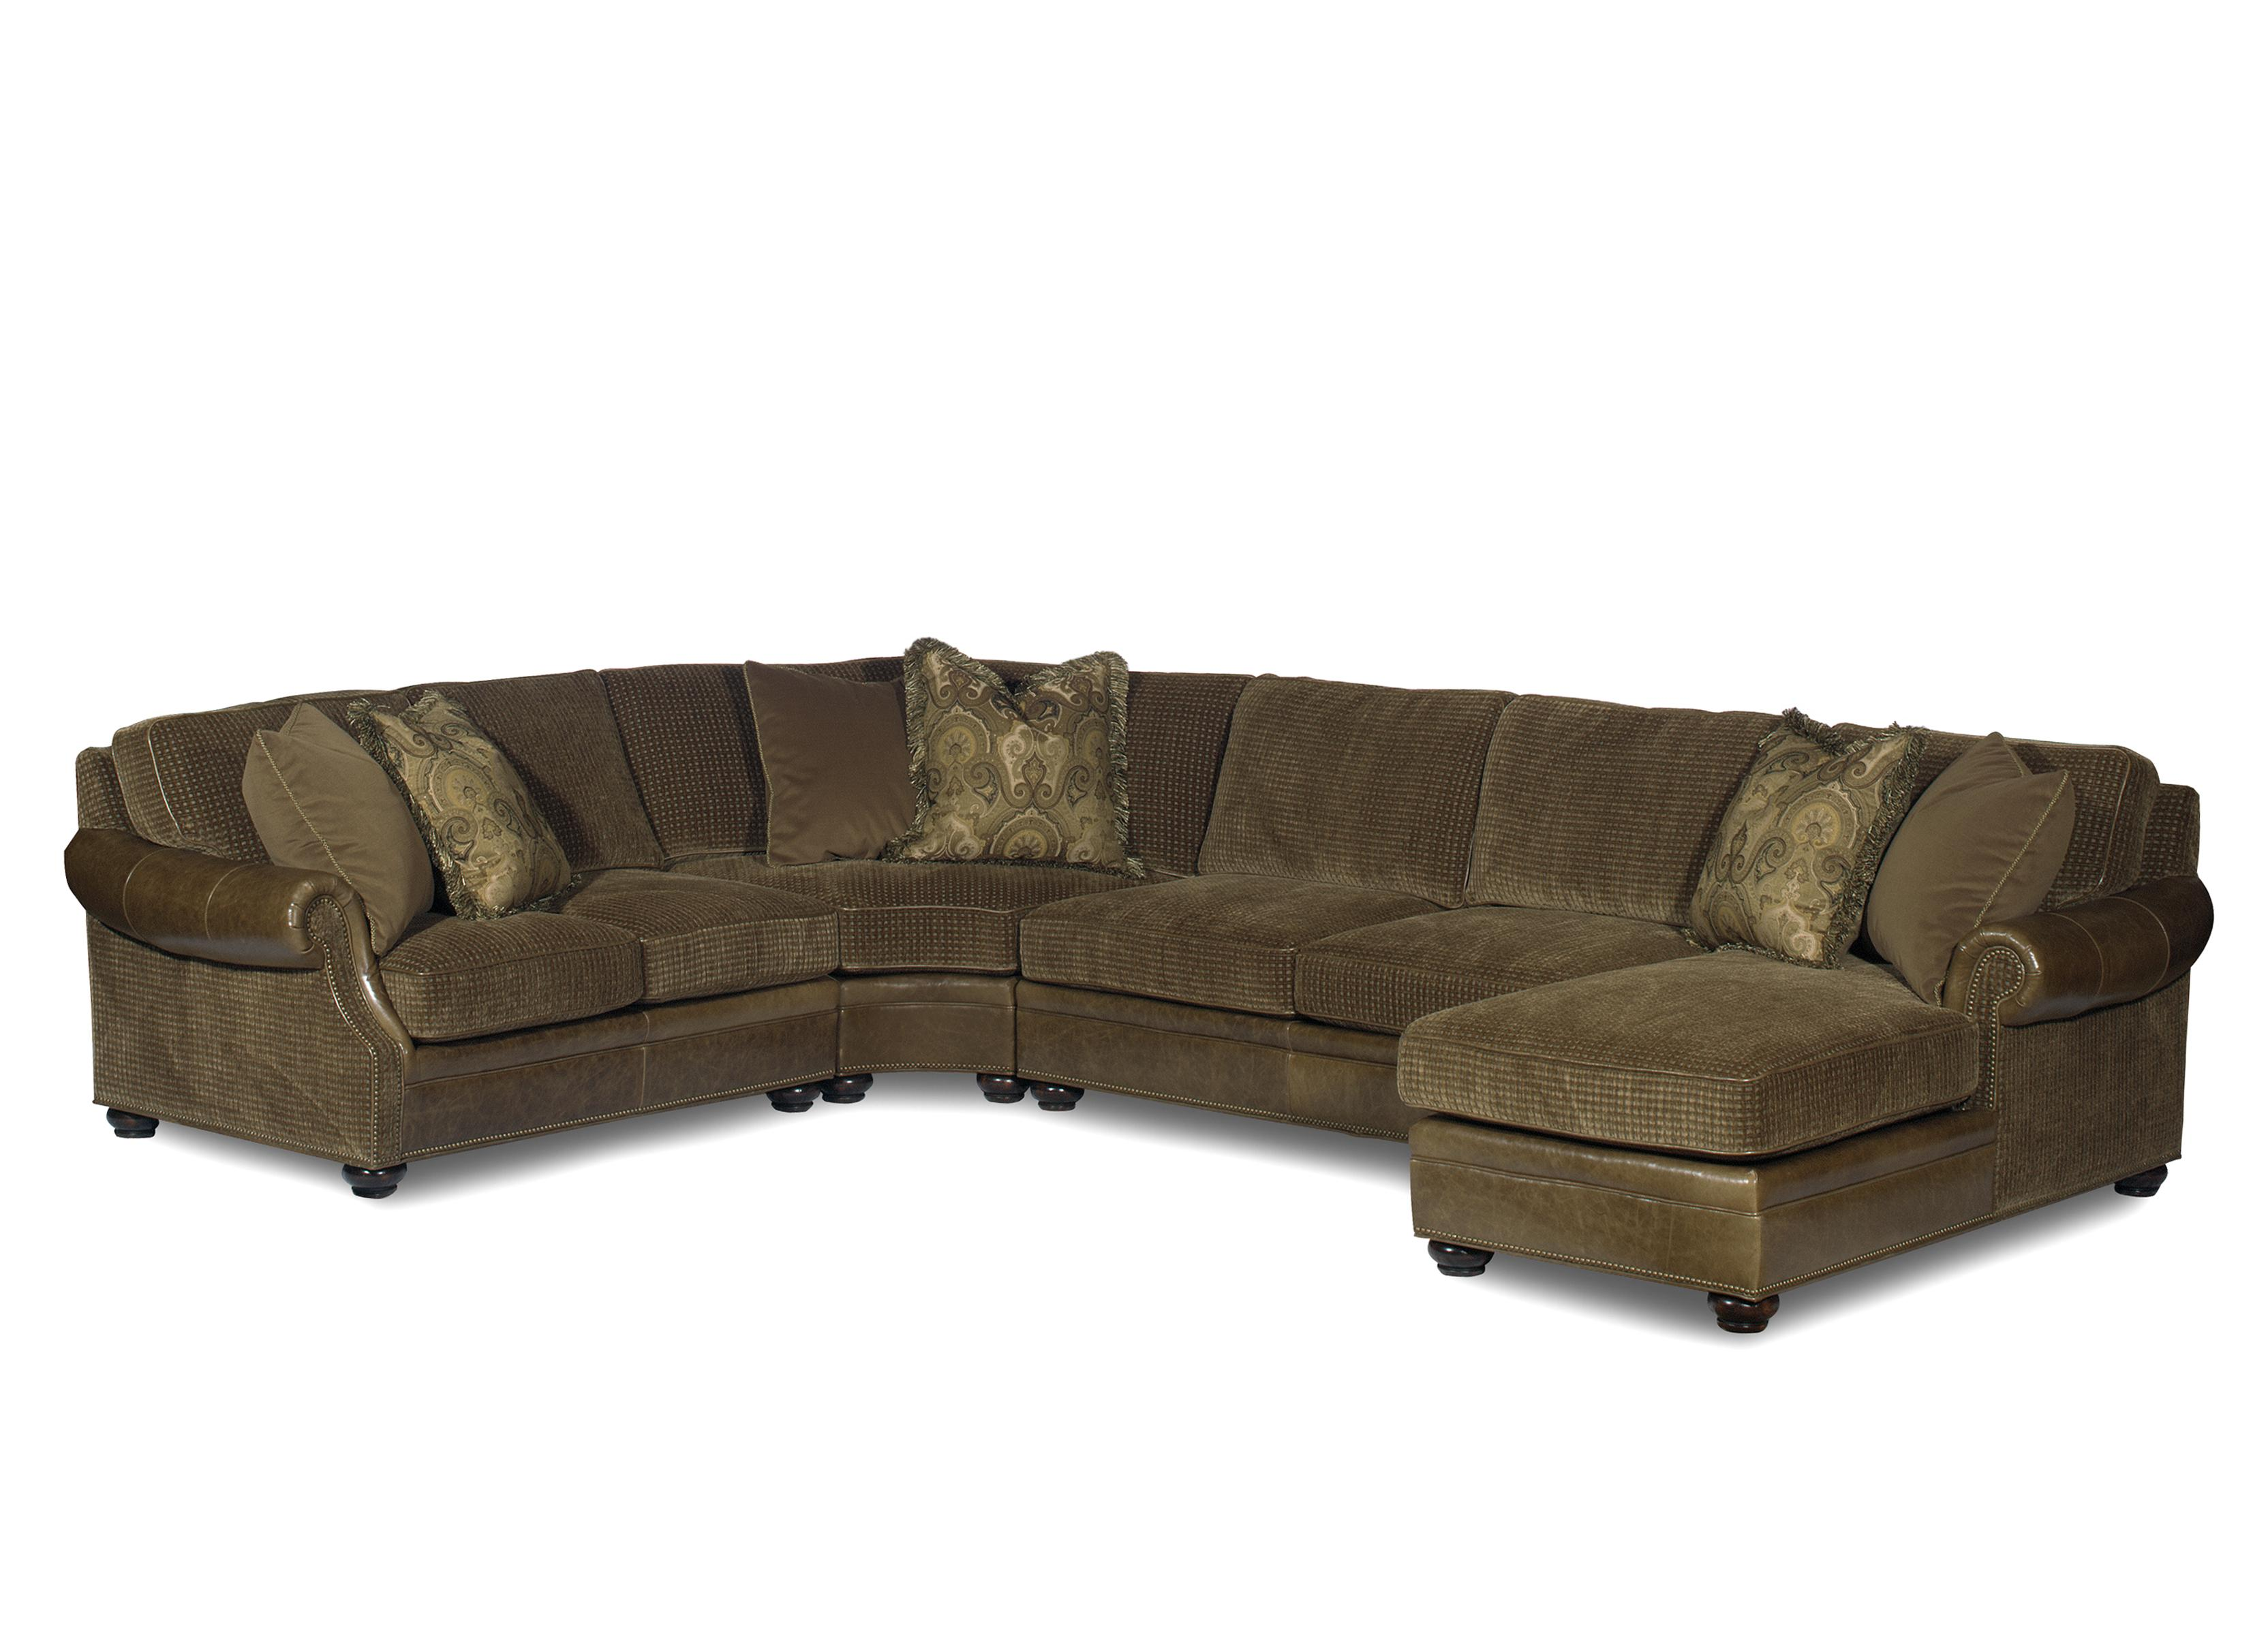 Warner  Sectional Sofa by Bradington Young at Baer's Furniture